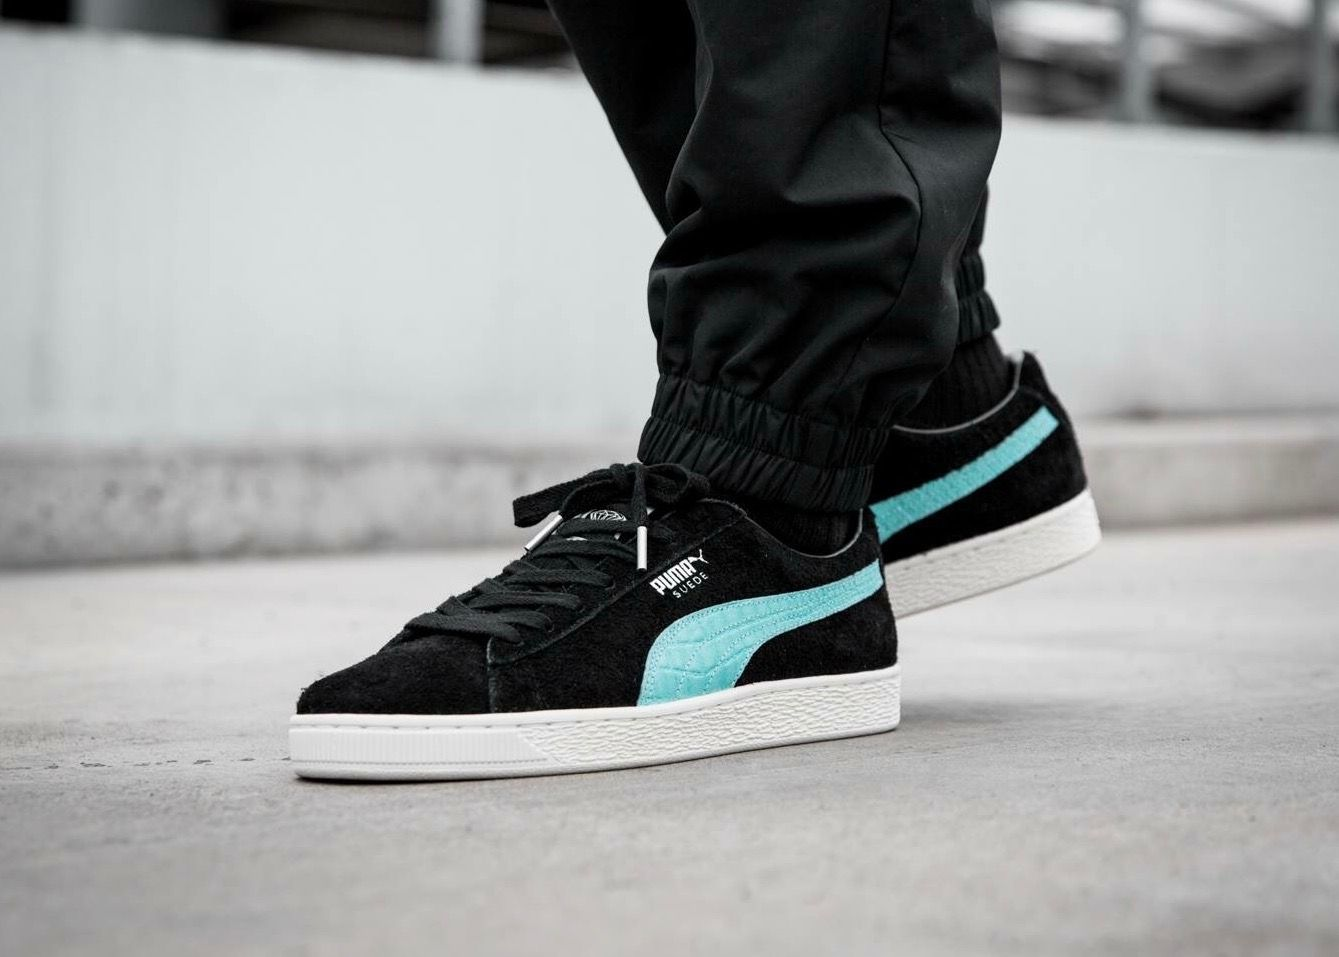 b9a89b106a Diamond Supply Co x Puma Suede | Puma | Puma suede, Pumas shoes ...